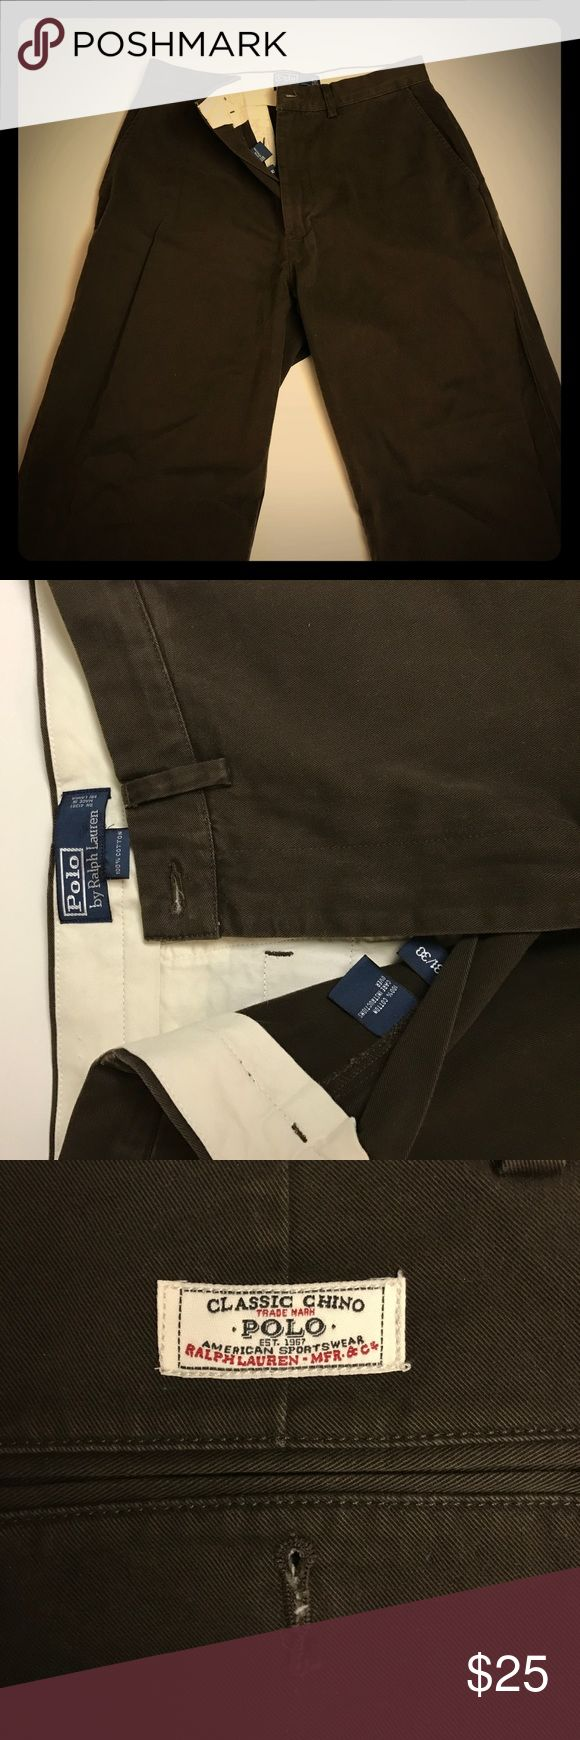 """Polo by Ralph Lauren Brown men's chinos 31"""" waist 30"""" length brown men's chinos by Polo Ralph Lauren. No sings of wear to be seen. Pants were worn only twice. Polo by Ralph Lauren Pants Chinos & Khakis"""